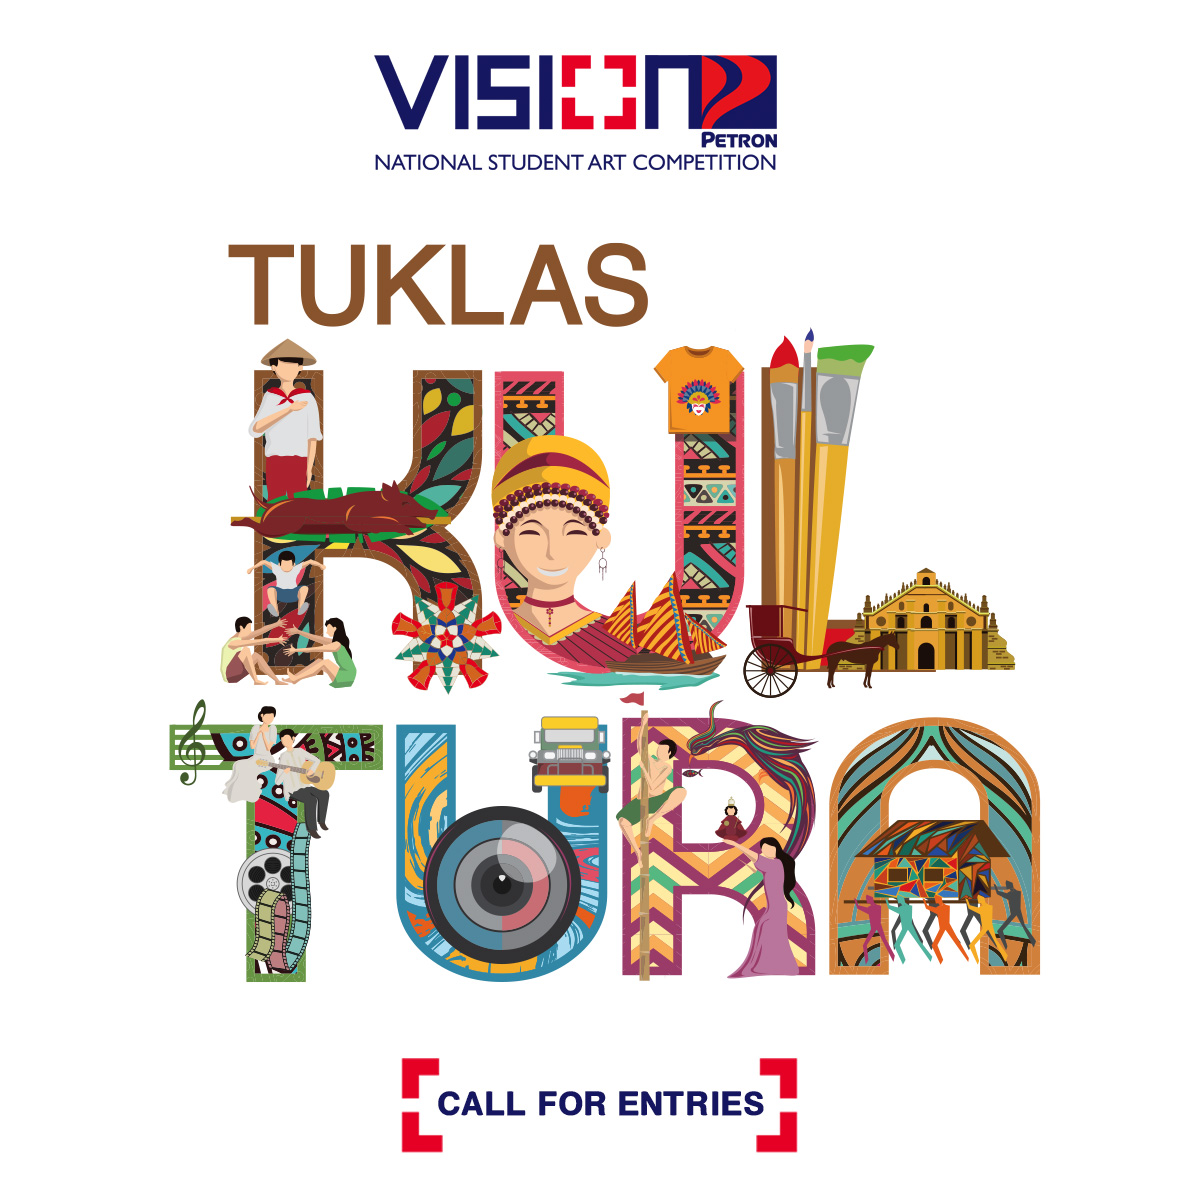 Vision Petron 2018 encourages youth look at our culture